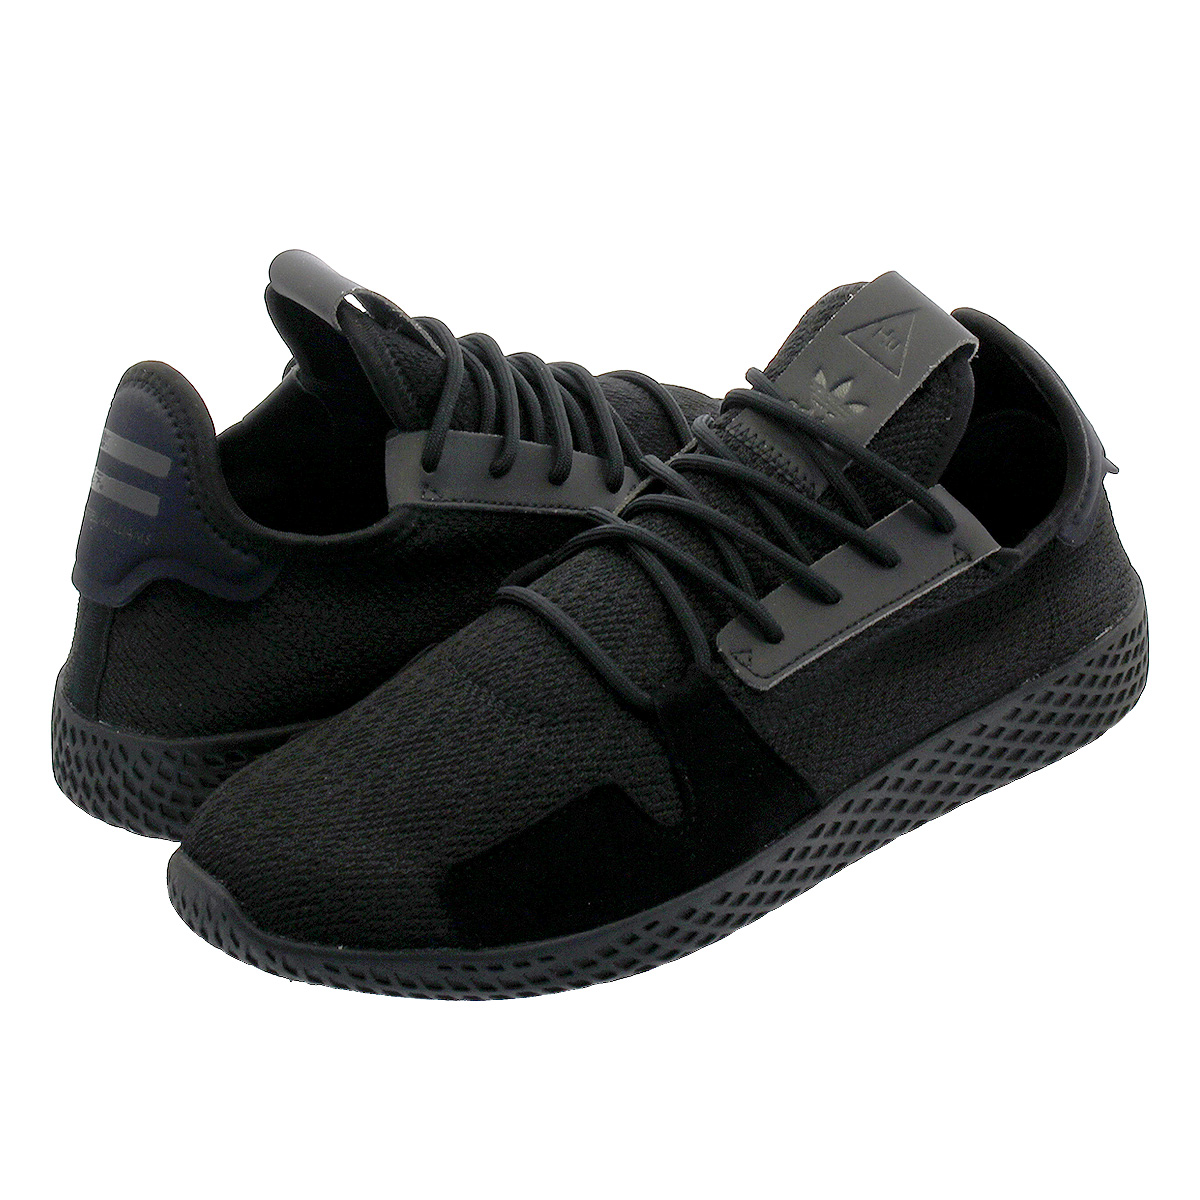 the best delicate colors best authentic adidas PW TENNIS HU V2 Adidas Farrell Williams tennis HU V2 CORE  BLACK/CARBON/RUNNING WHITE db3326